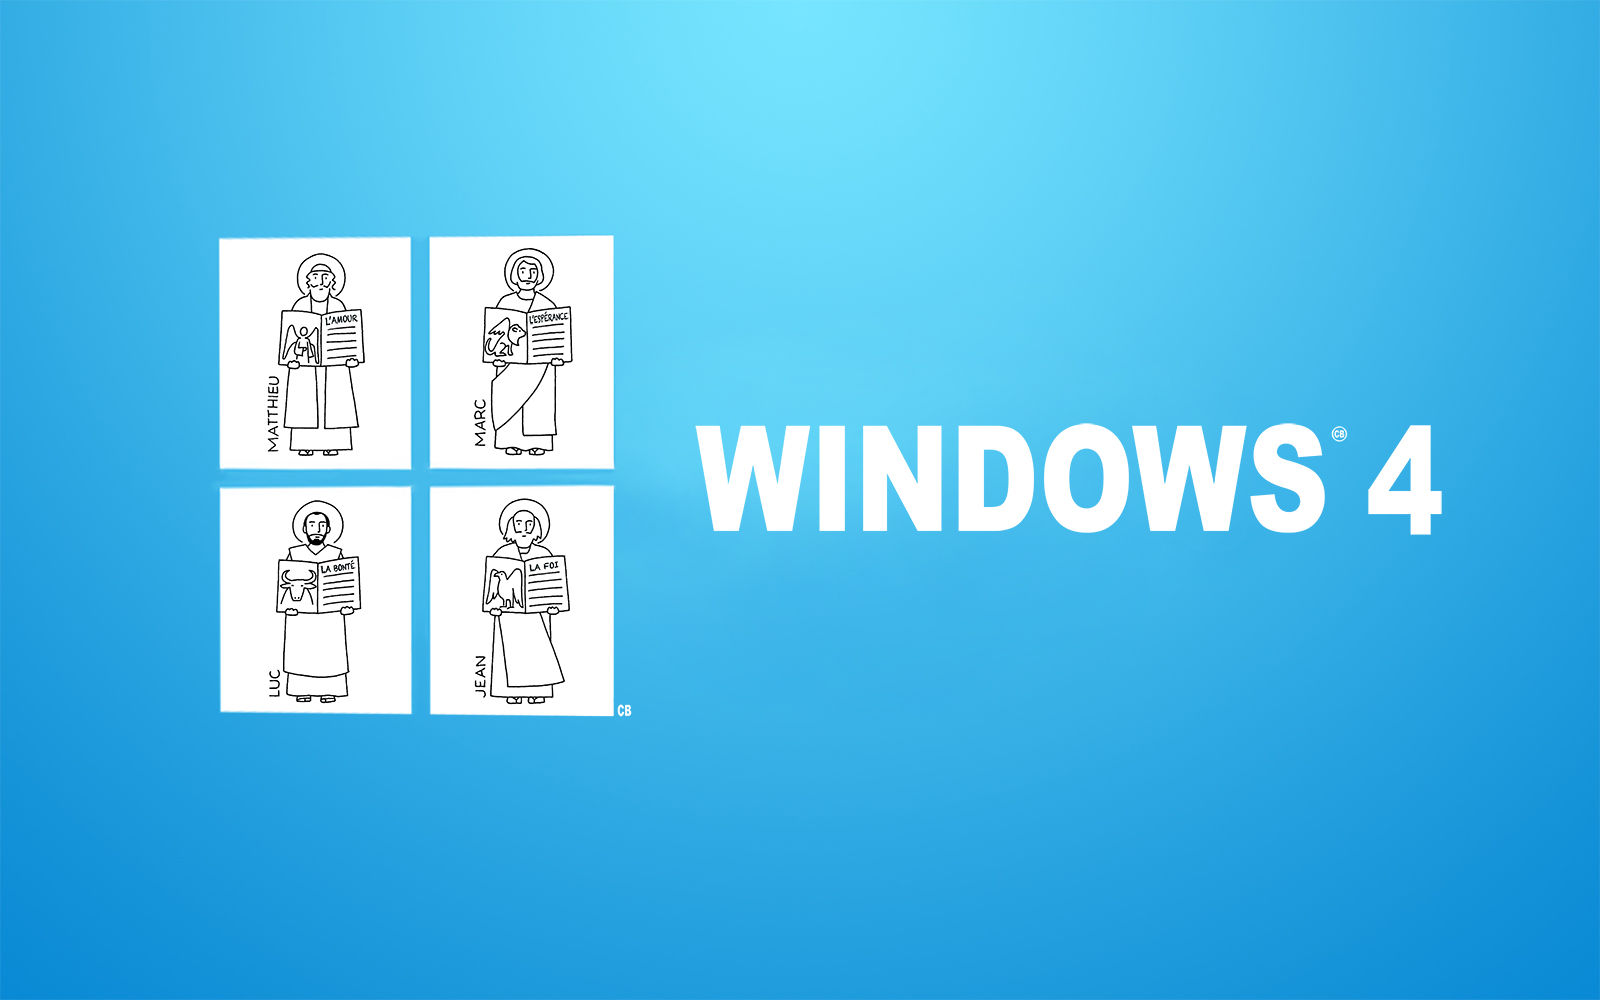 WINDOWS 4